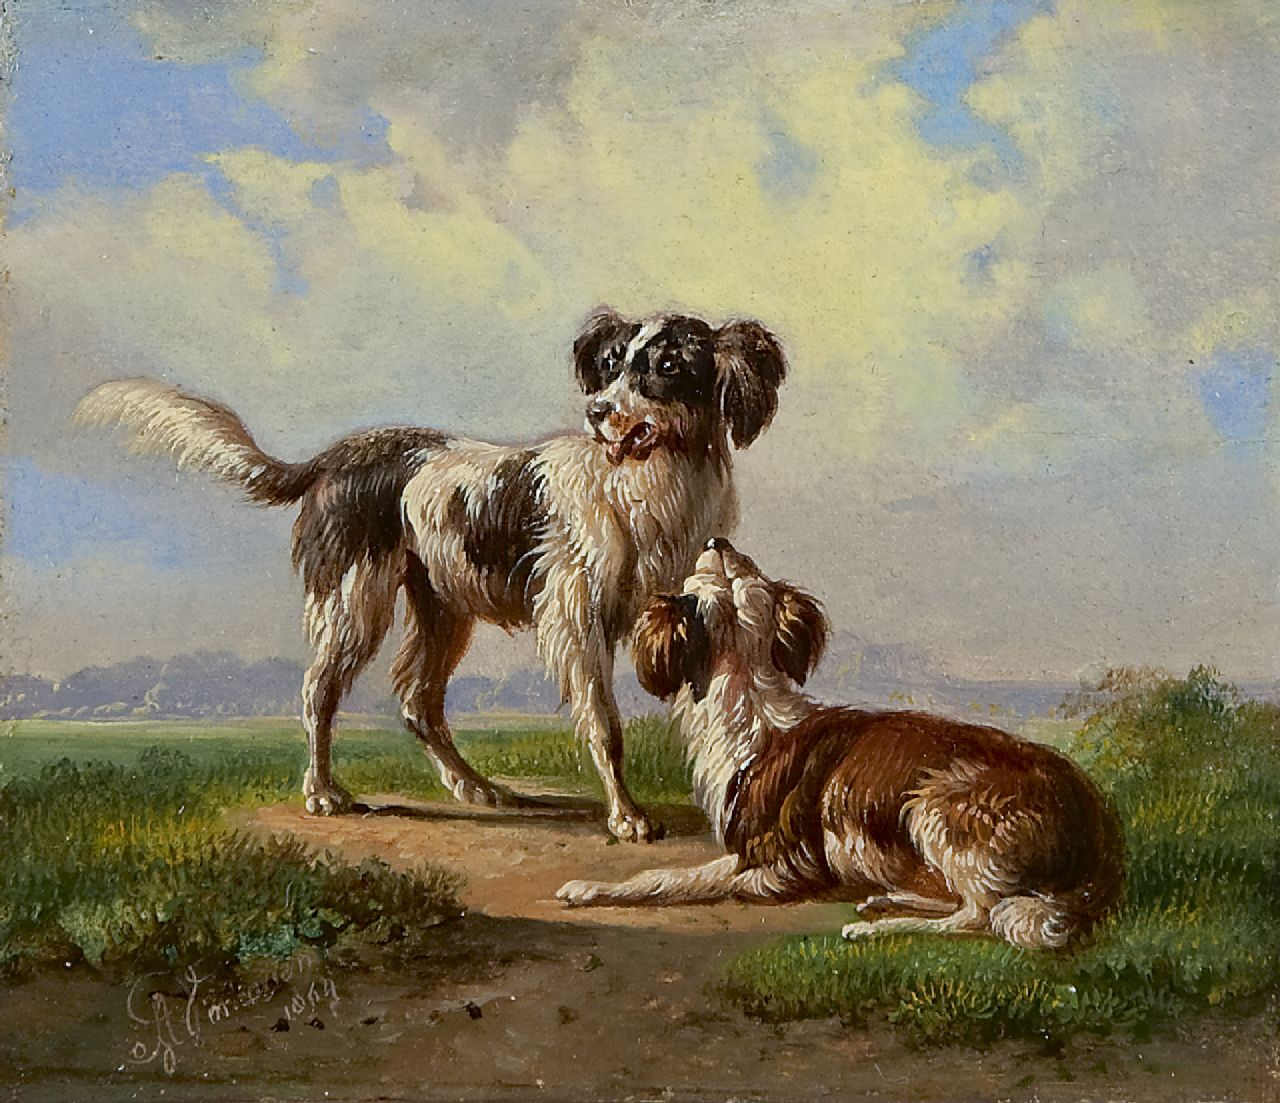 Verhoesen A.  | Albertus Verhoesen, Two hounds in a landscape, oil on panel 10.8 x 12.4 cm, signed l.l. and dated 1864